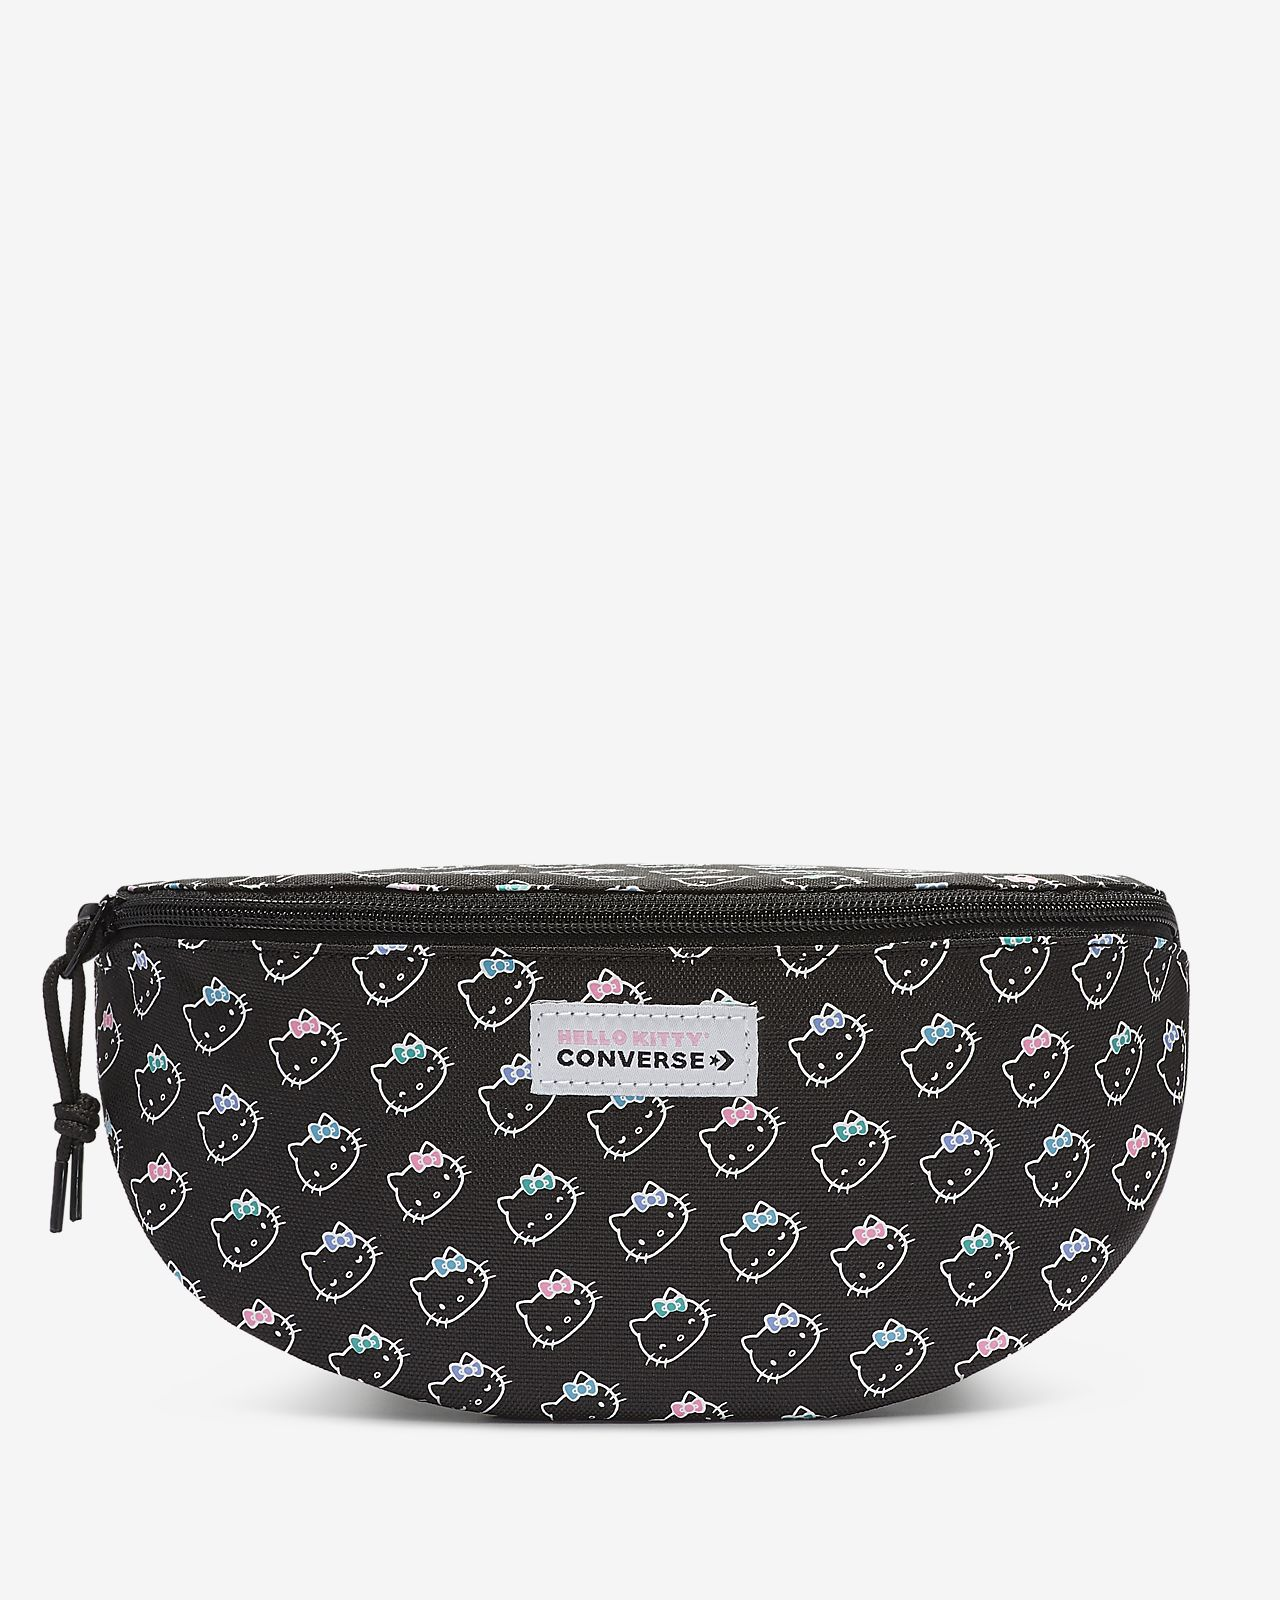 Converse x Hello Kitty Sling Pack